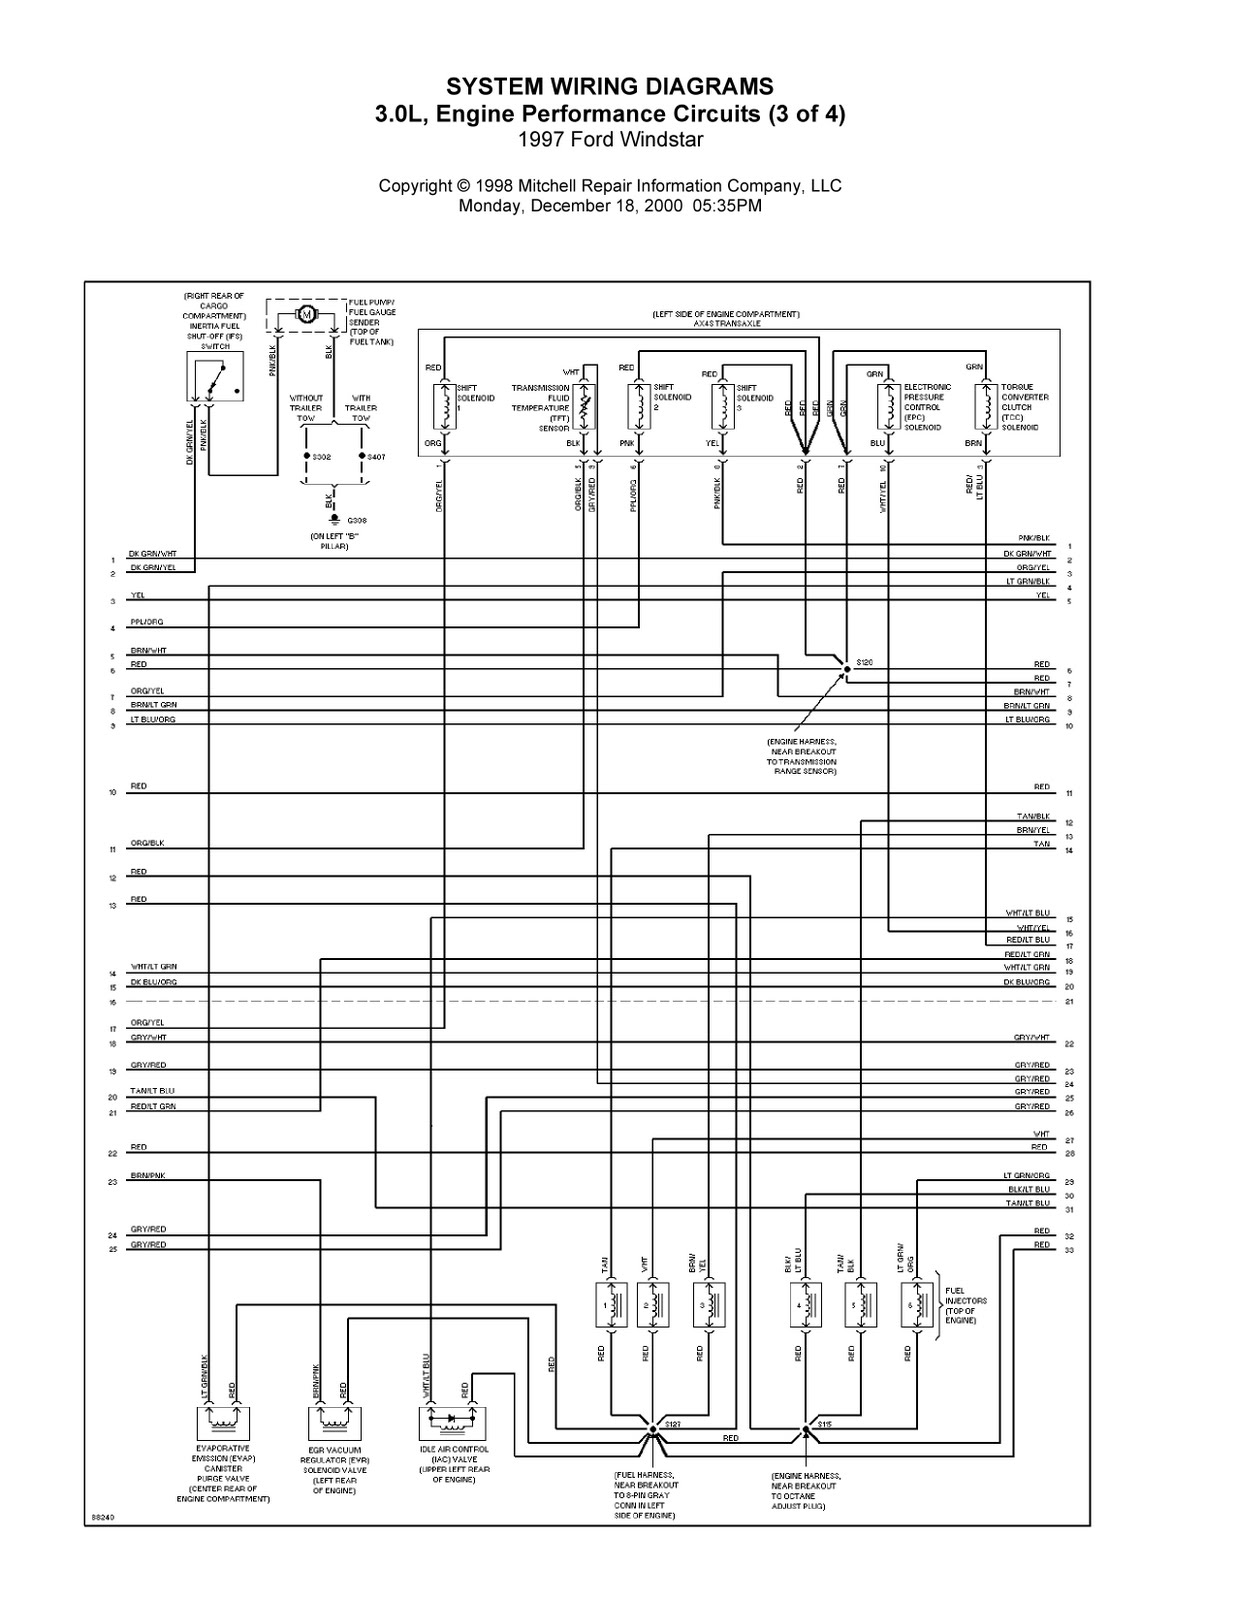 wiring diagram for 2000 ford windstar get free image about wiring diagram